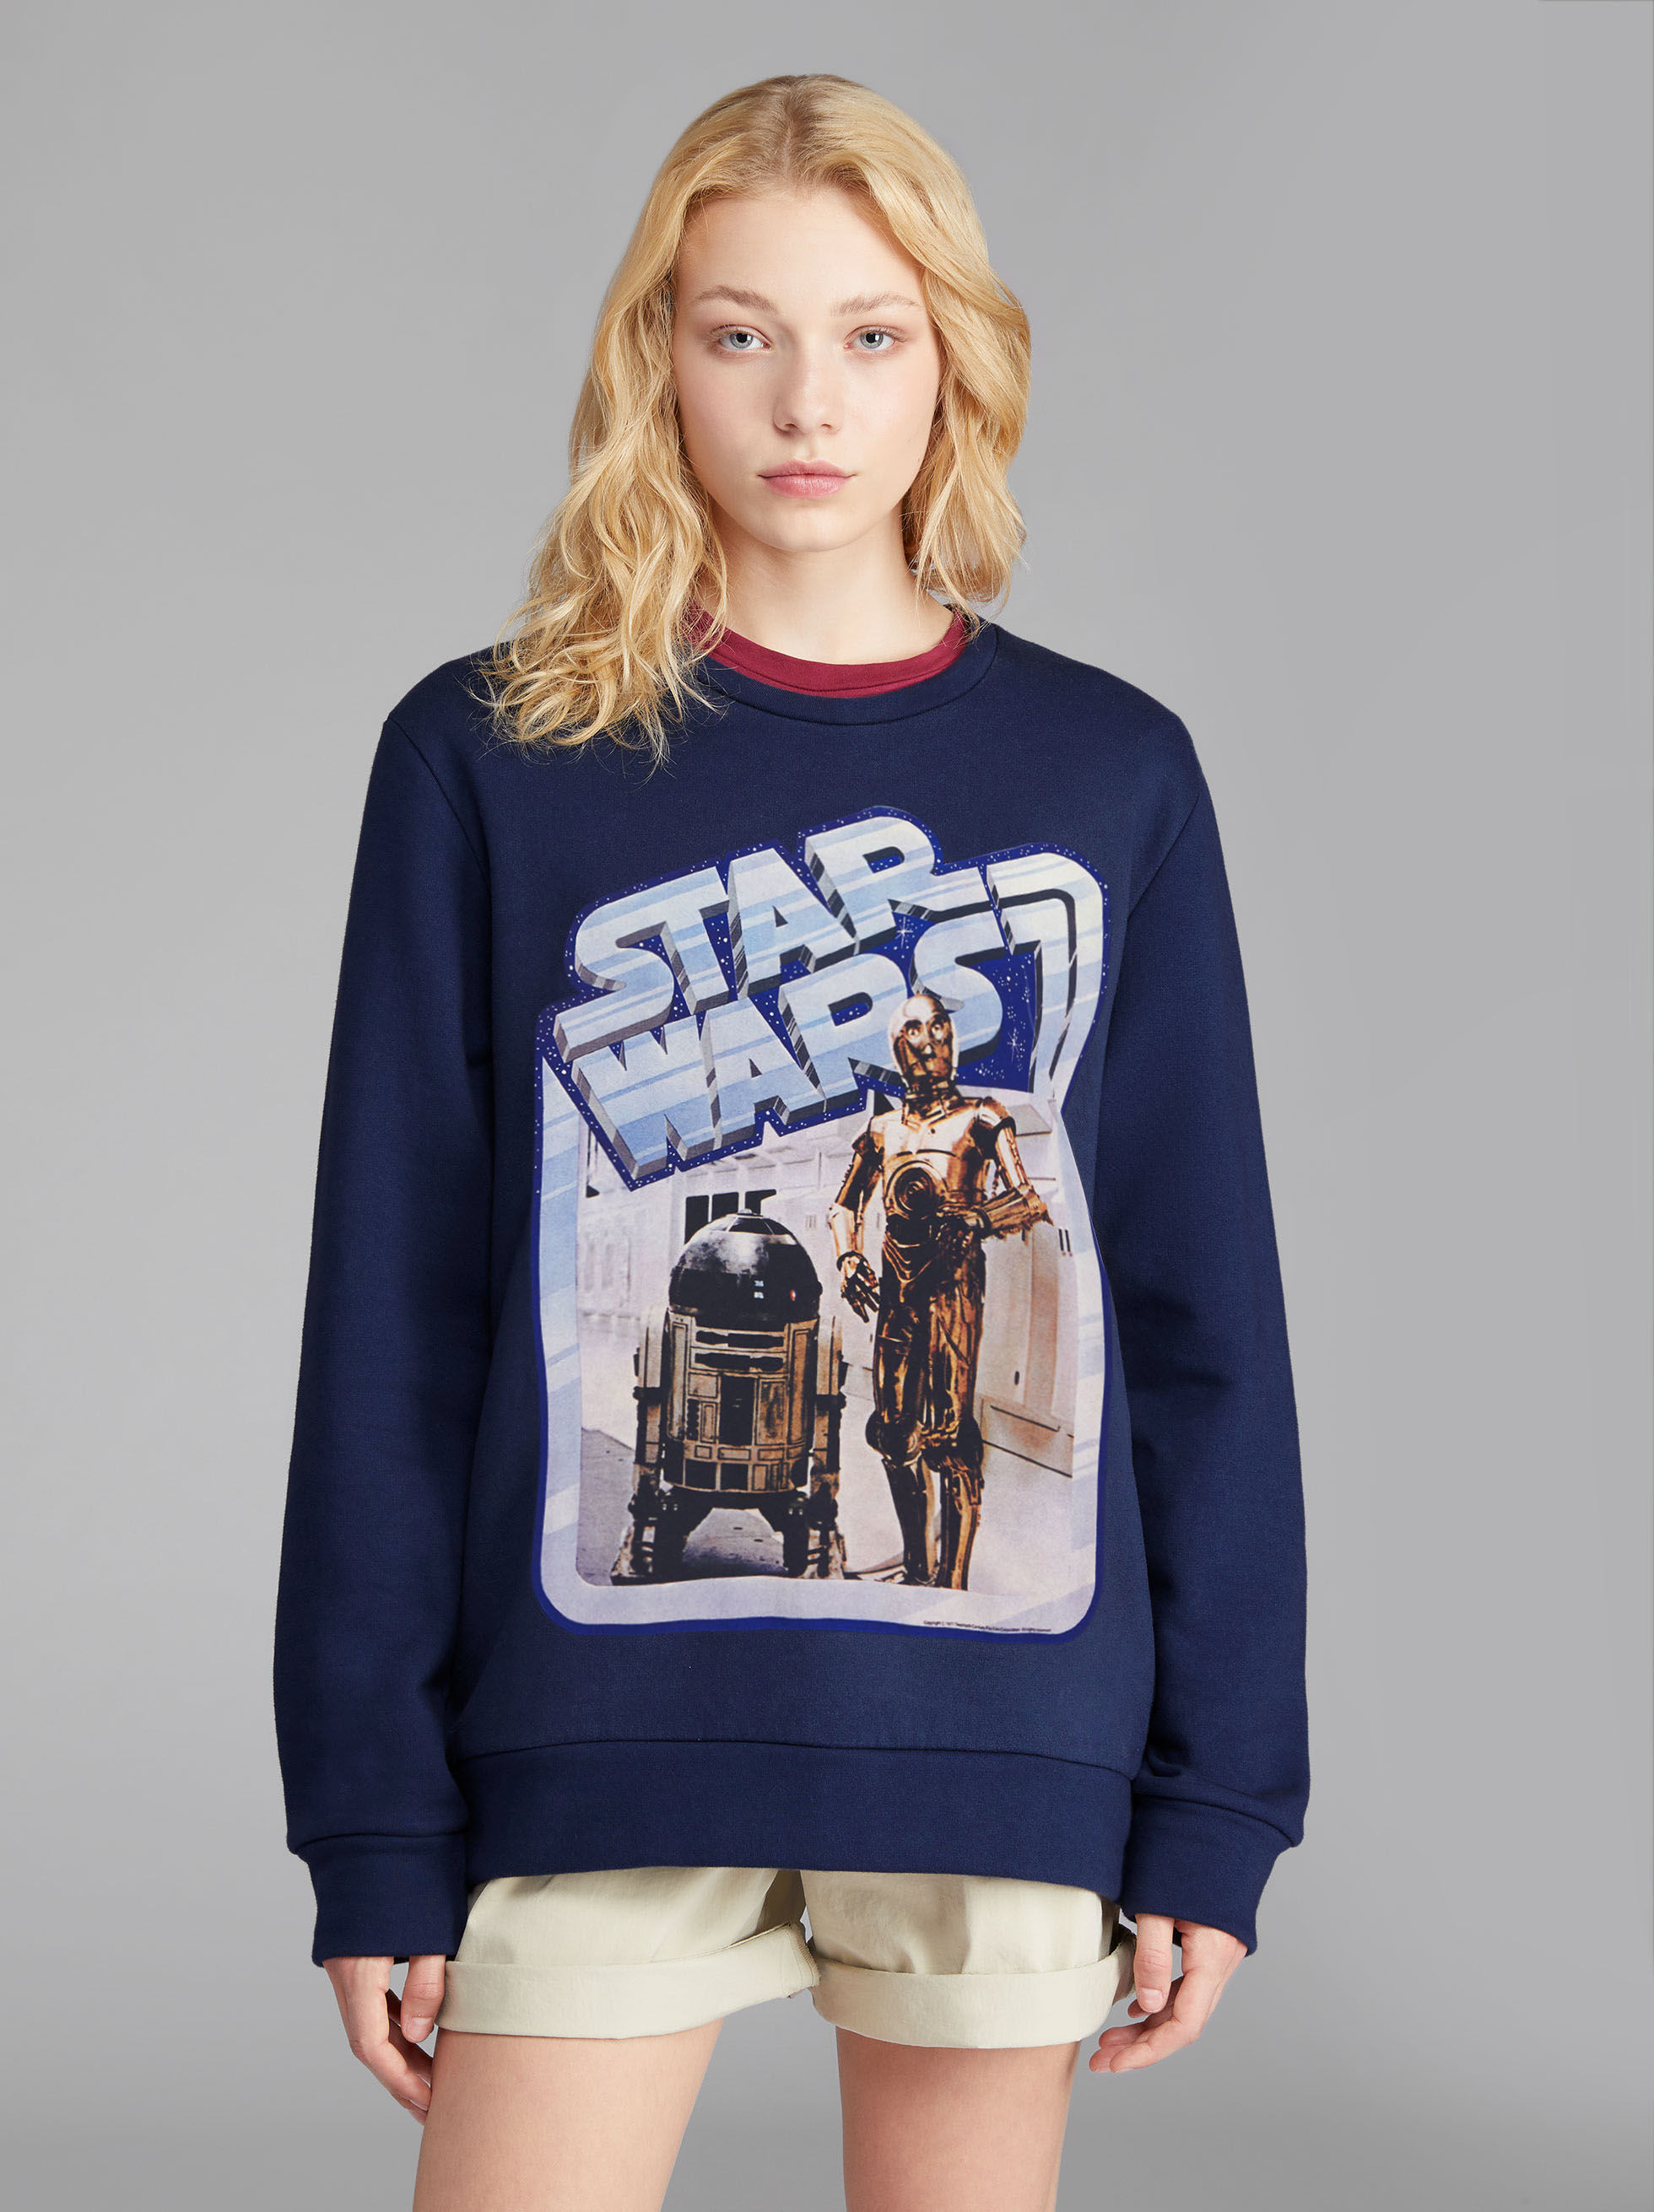 ETRO X STAR WARS SWEATSHIRT